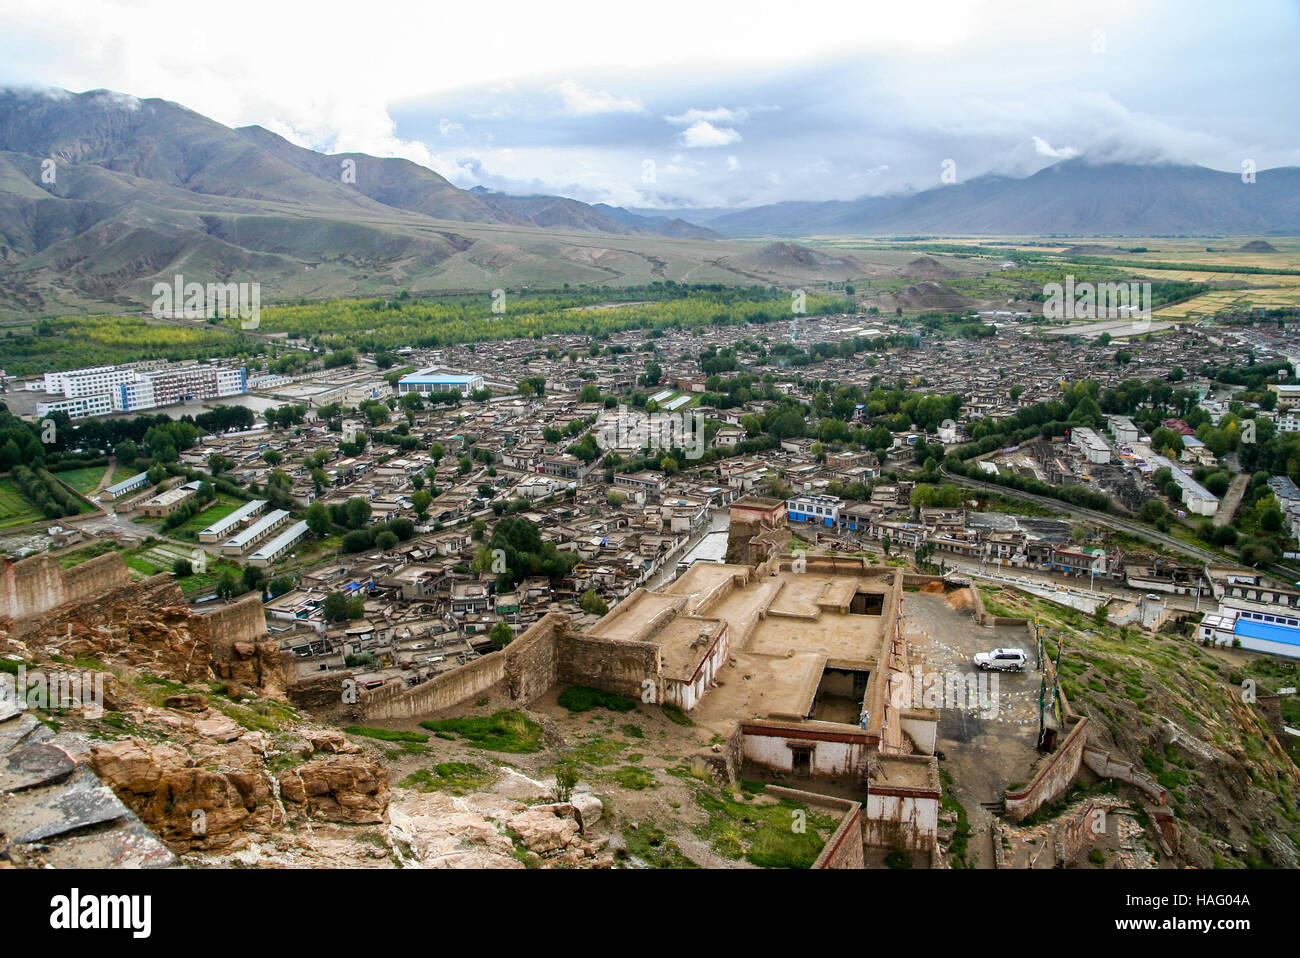 The aerial view of the walled Gyantse town in the Tibet Autonomous Region of China - Stock Image